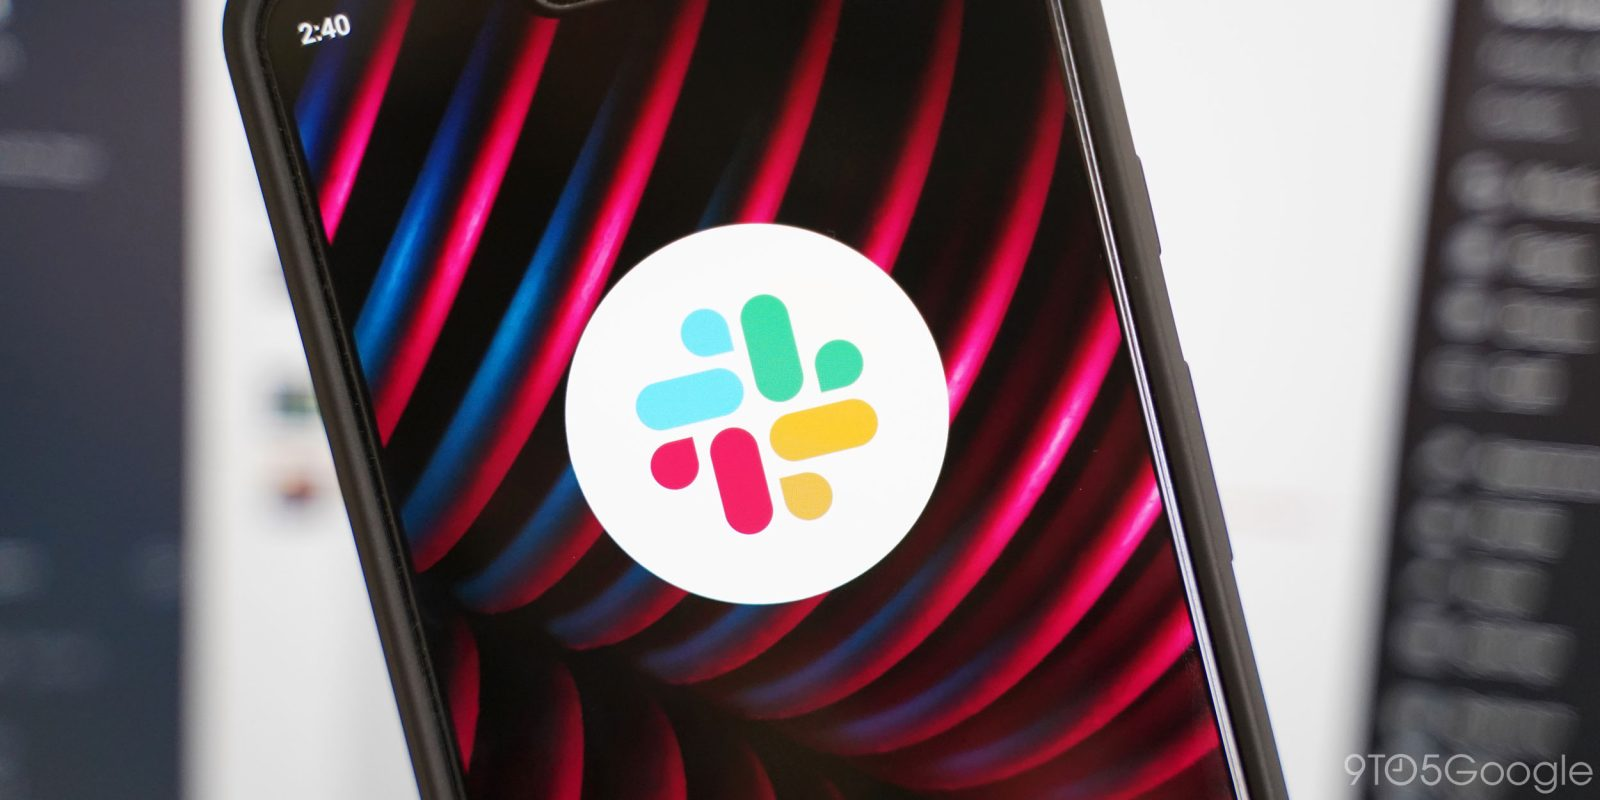 Slack's latest app updates make subtle, tortuous tweaks to fonts and notifications